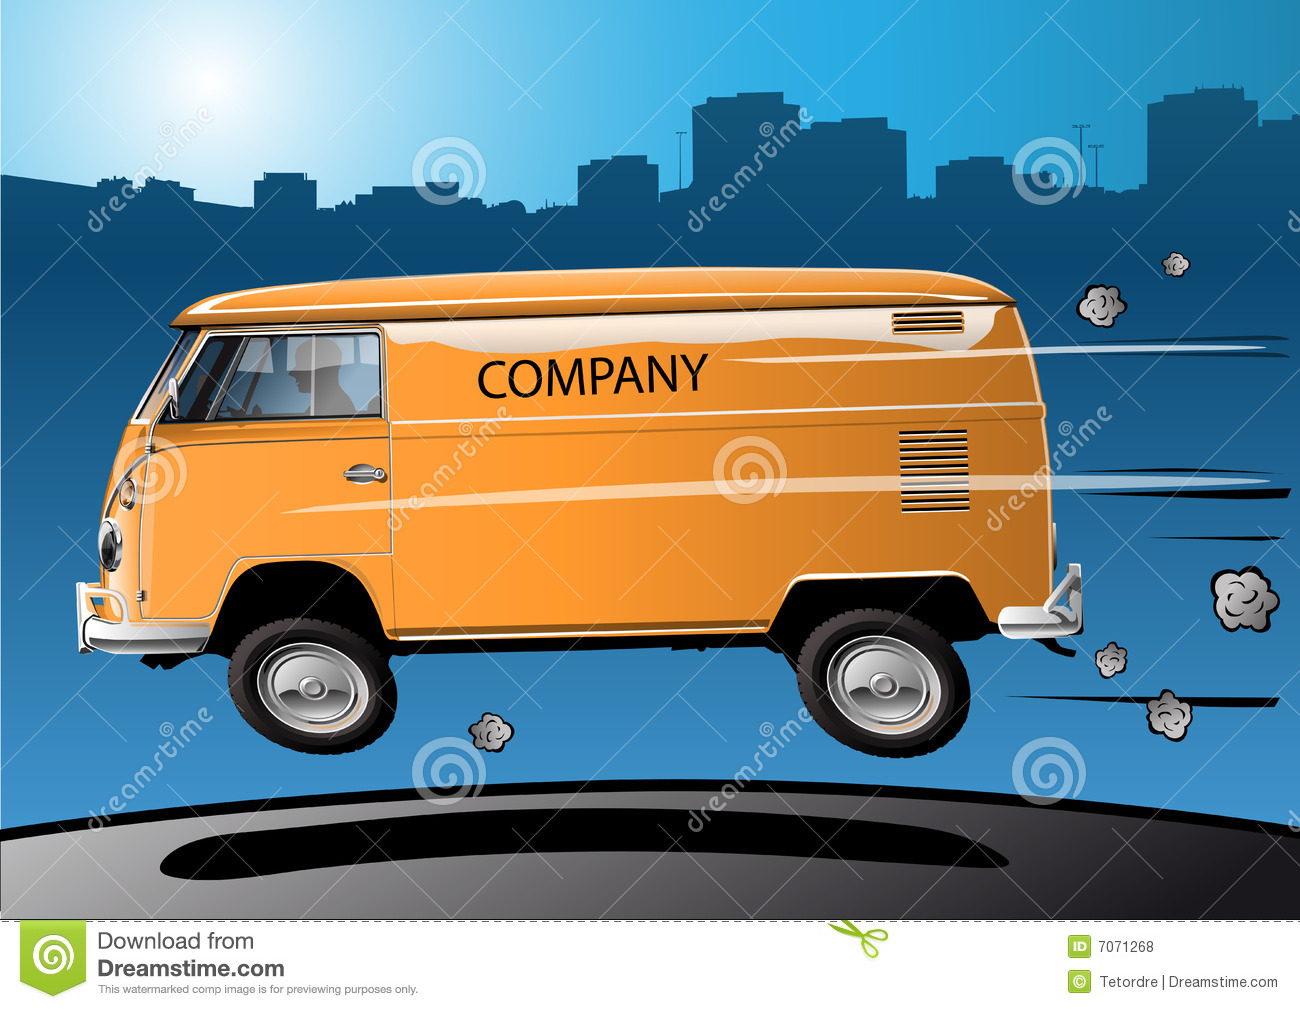 Fast Volkswagen Transporter Royalty Free Stock Photos.